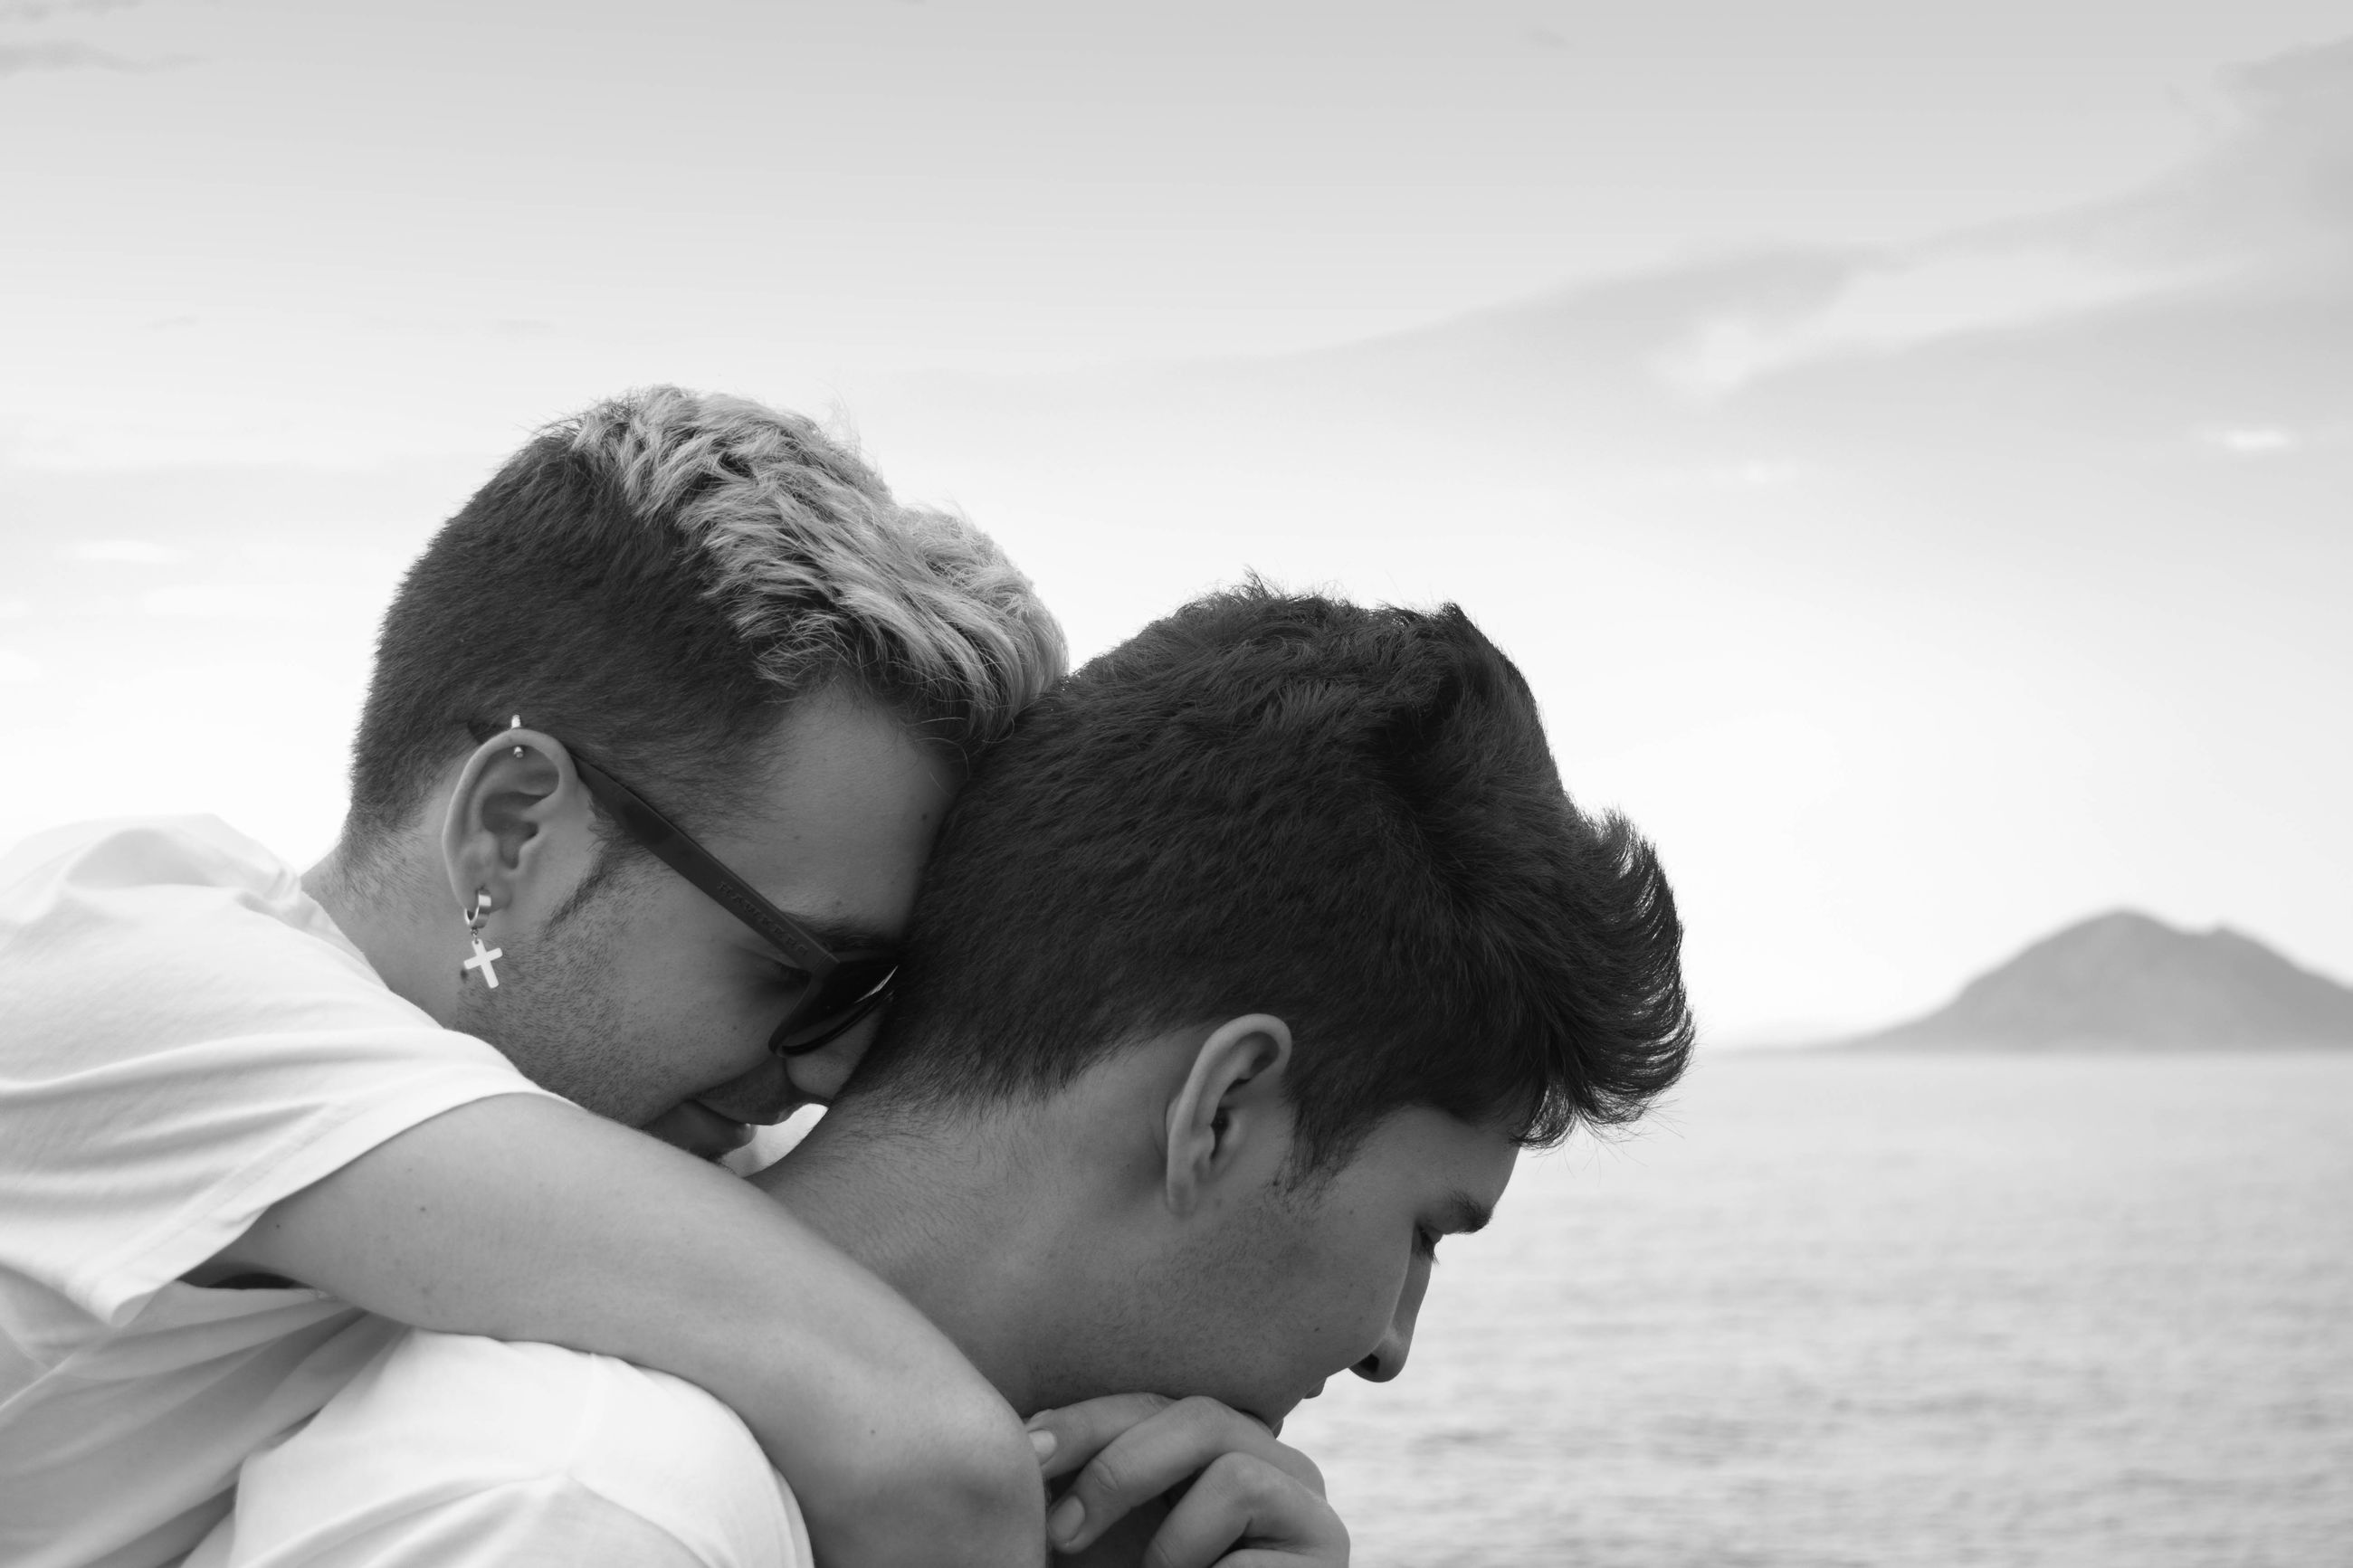 Close-up of homosexual couple embracing by sea against sky